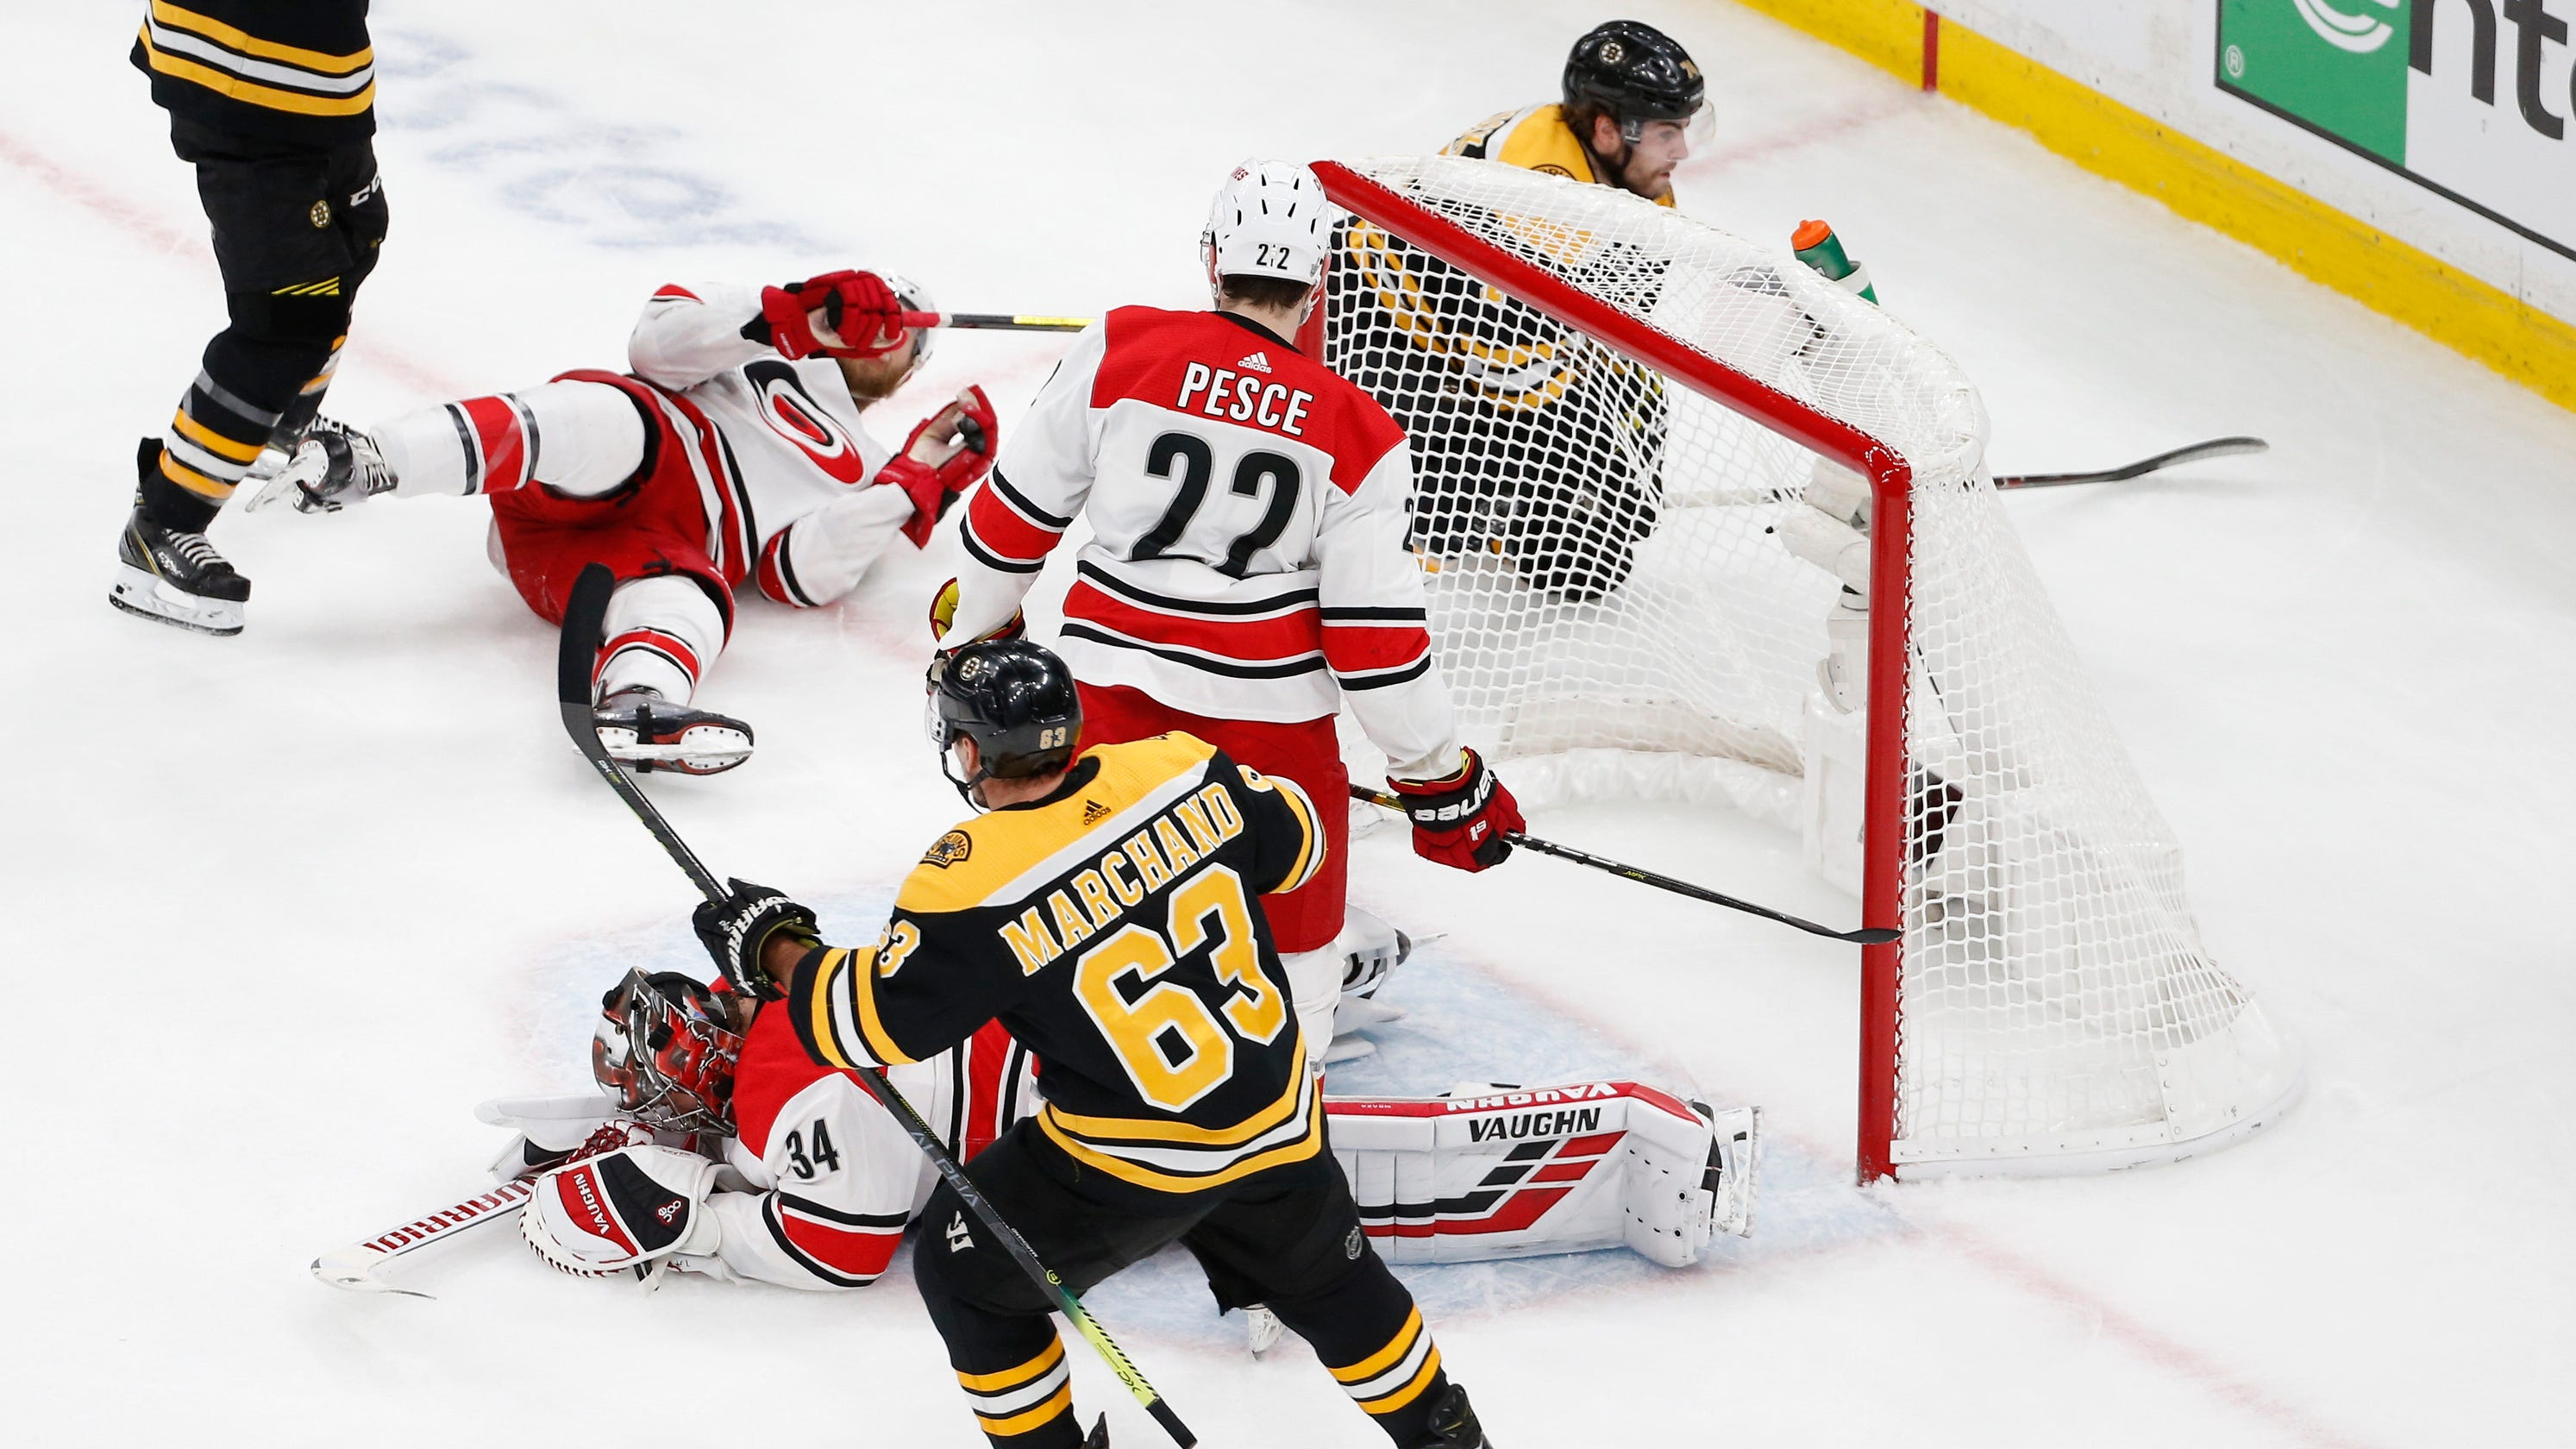 NHL Playoffs: Hurricanes Need To Change Goalies To Save